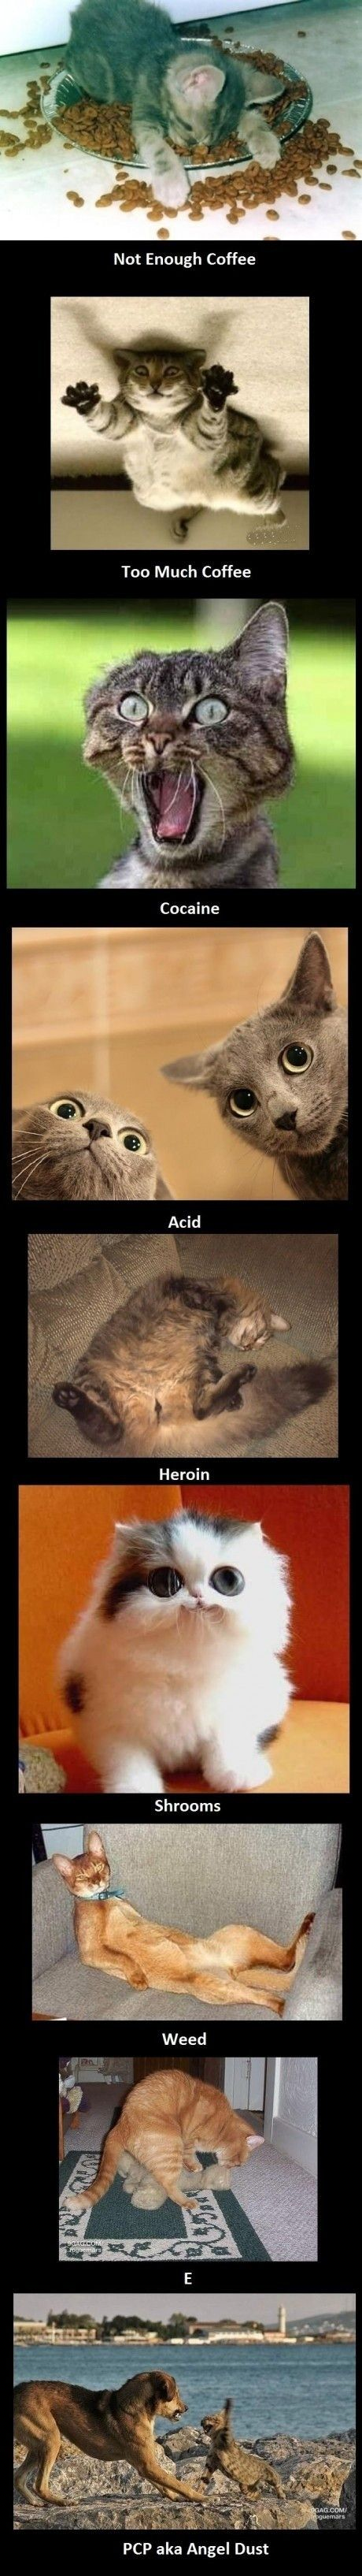 haha wowCat, Laugh, Drugs, Funny Stuff, Humor, Things, Kitty, Giggles, Animal